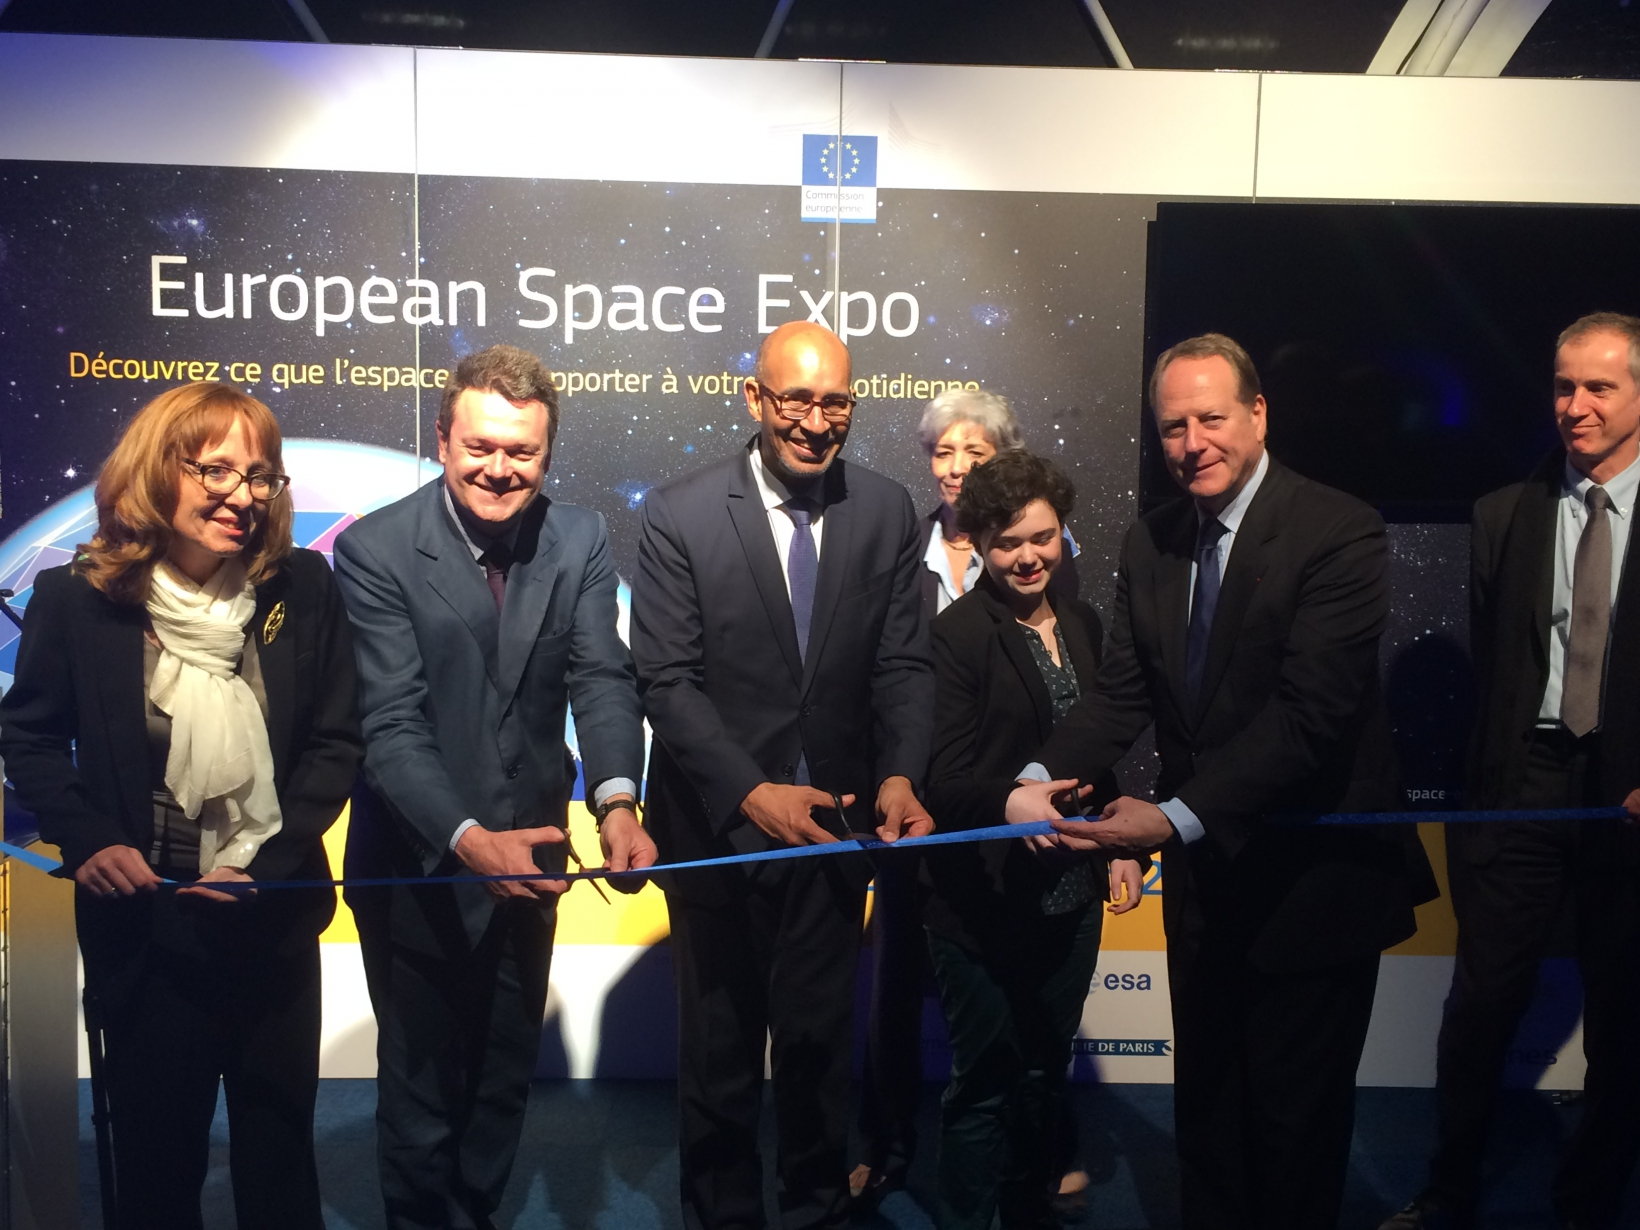 Over 950 000 European citizens have visited the Expo as it continues its tour of major European cities.